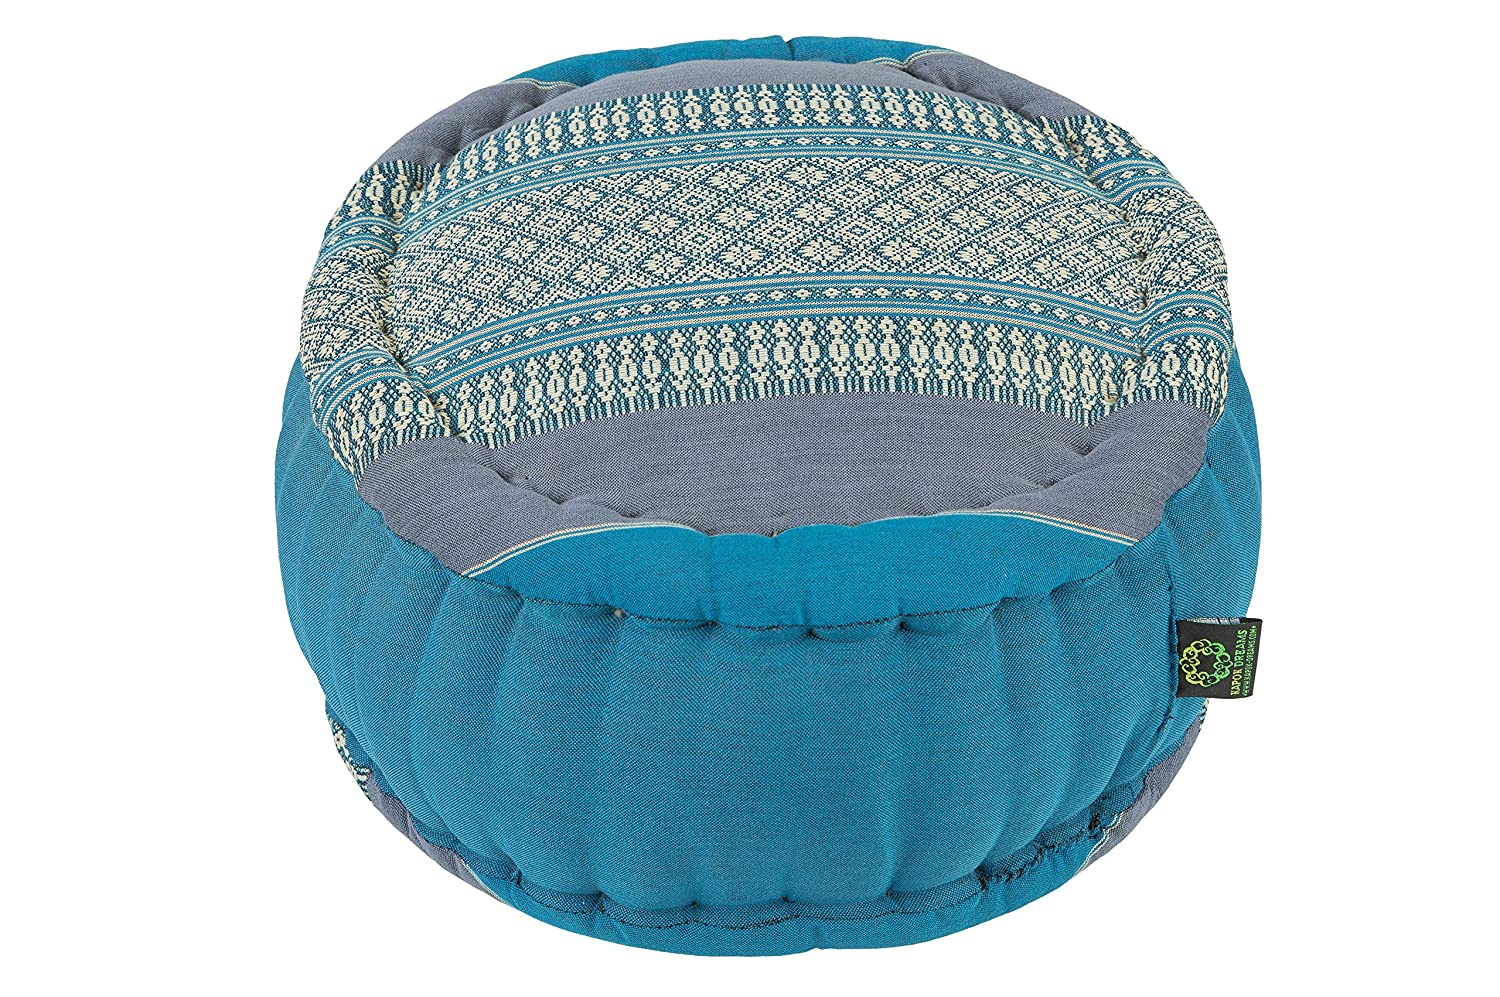 Kapok Dreams Zafu Round Meditation Cushion 100% Kapok, Thai Design Pillow MONGRN03